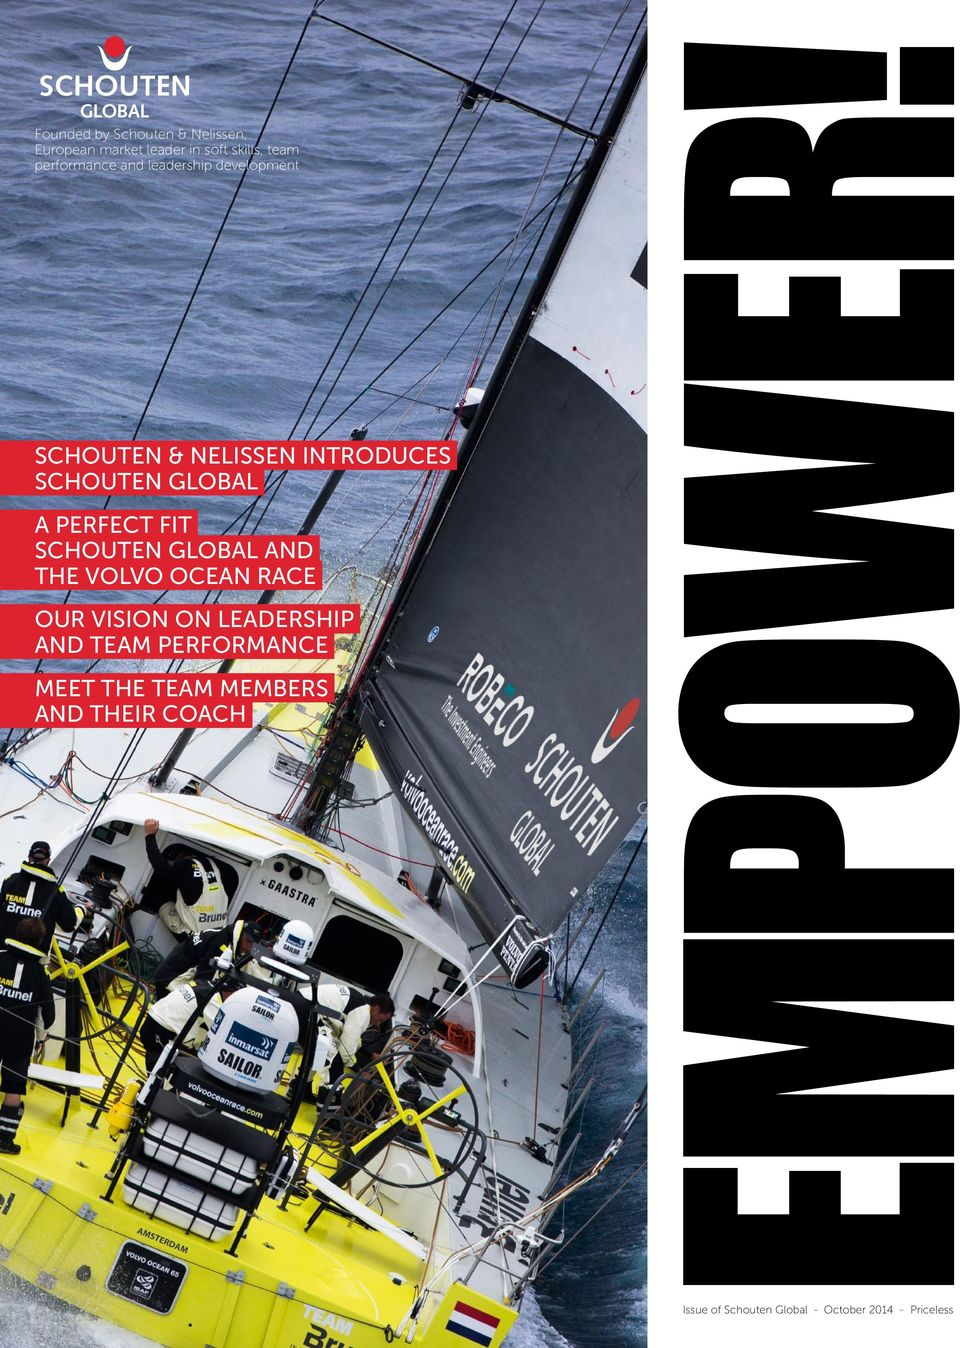 SCHOUTEN GLOBAL AND THE VOLVO OCEAN RACE OUR VISION ON LEADERSHIP AND TEAM PERFORMANCE